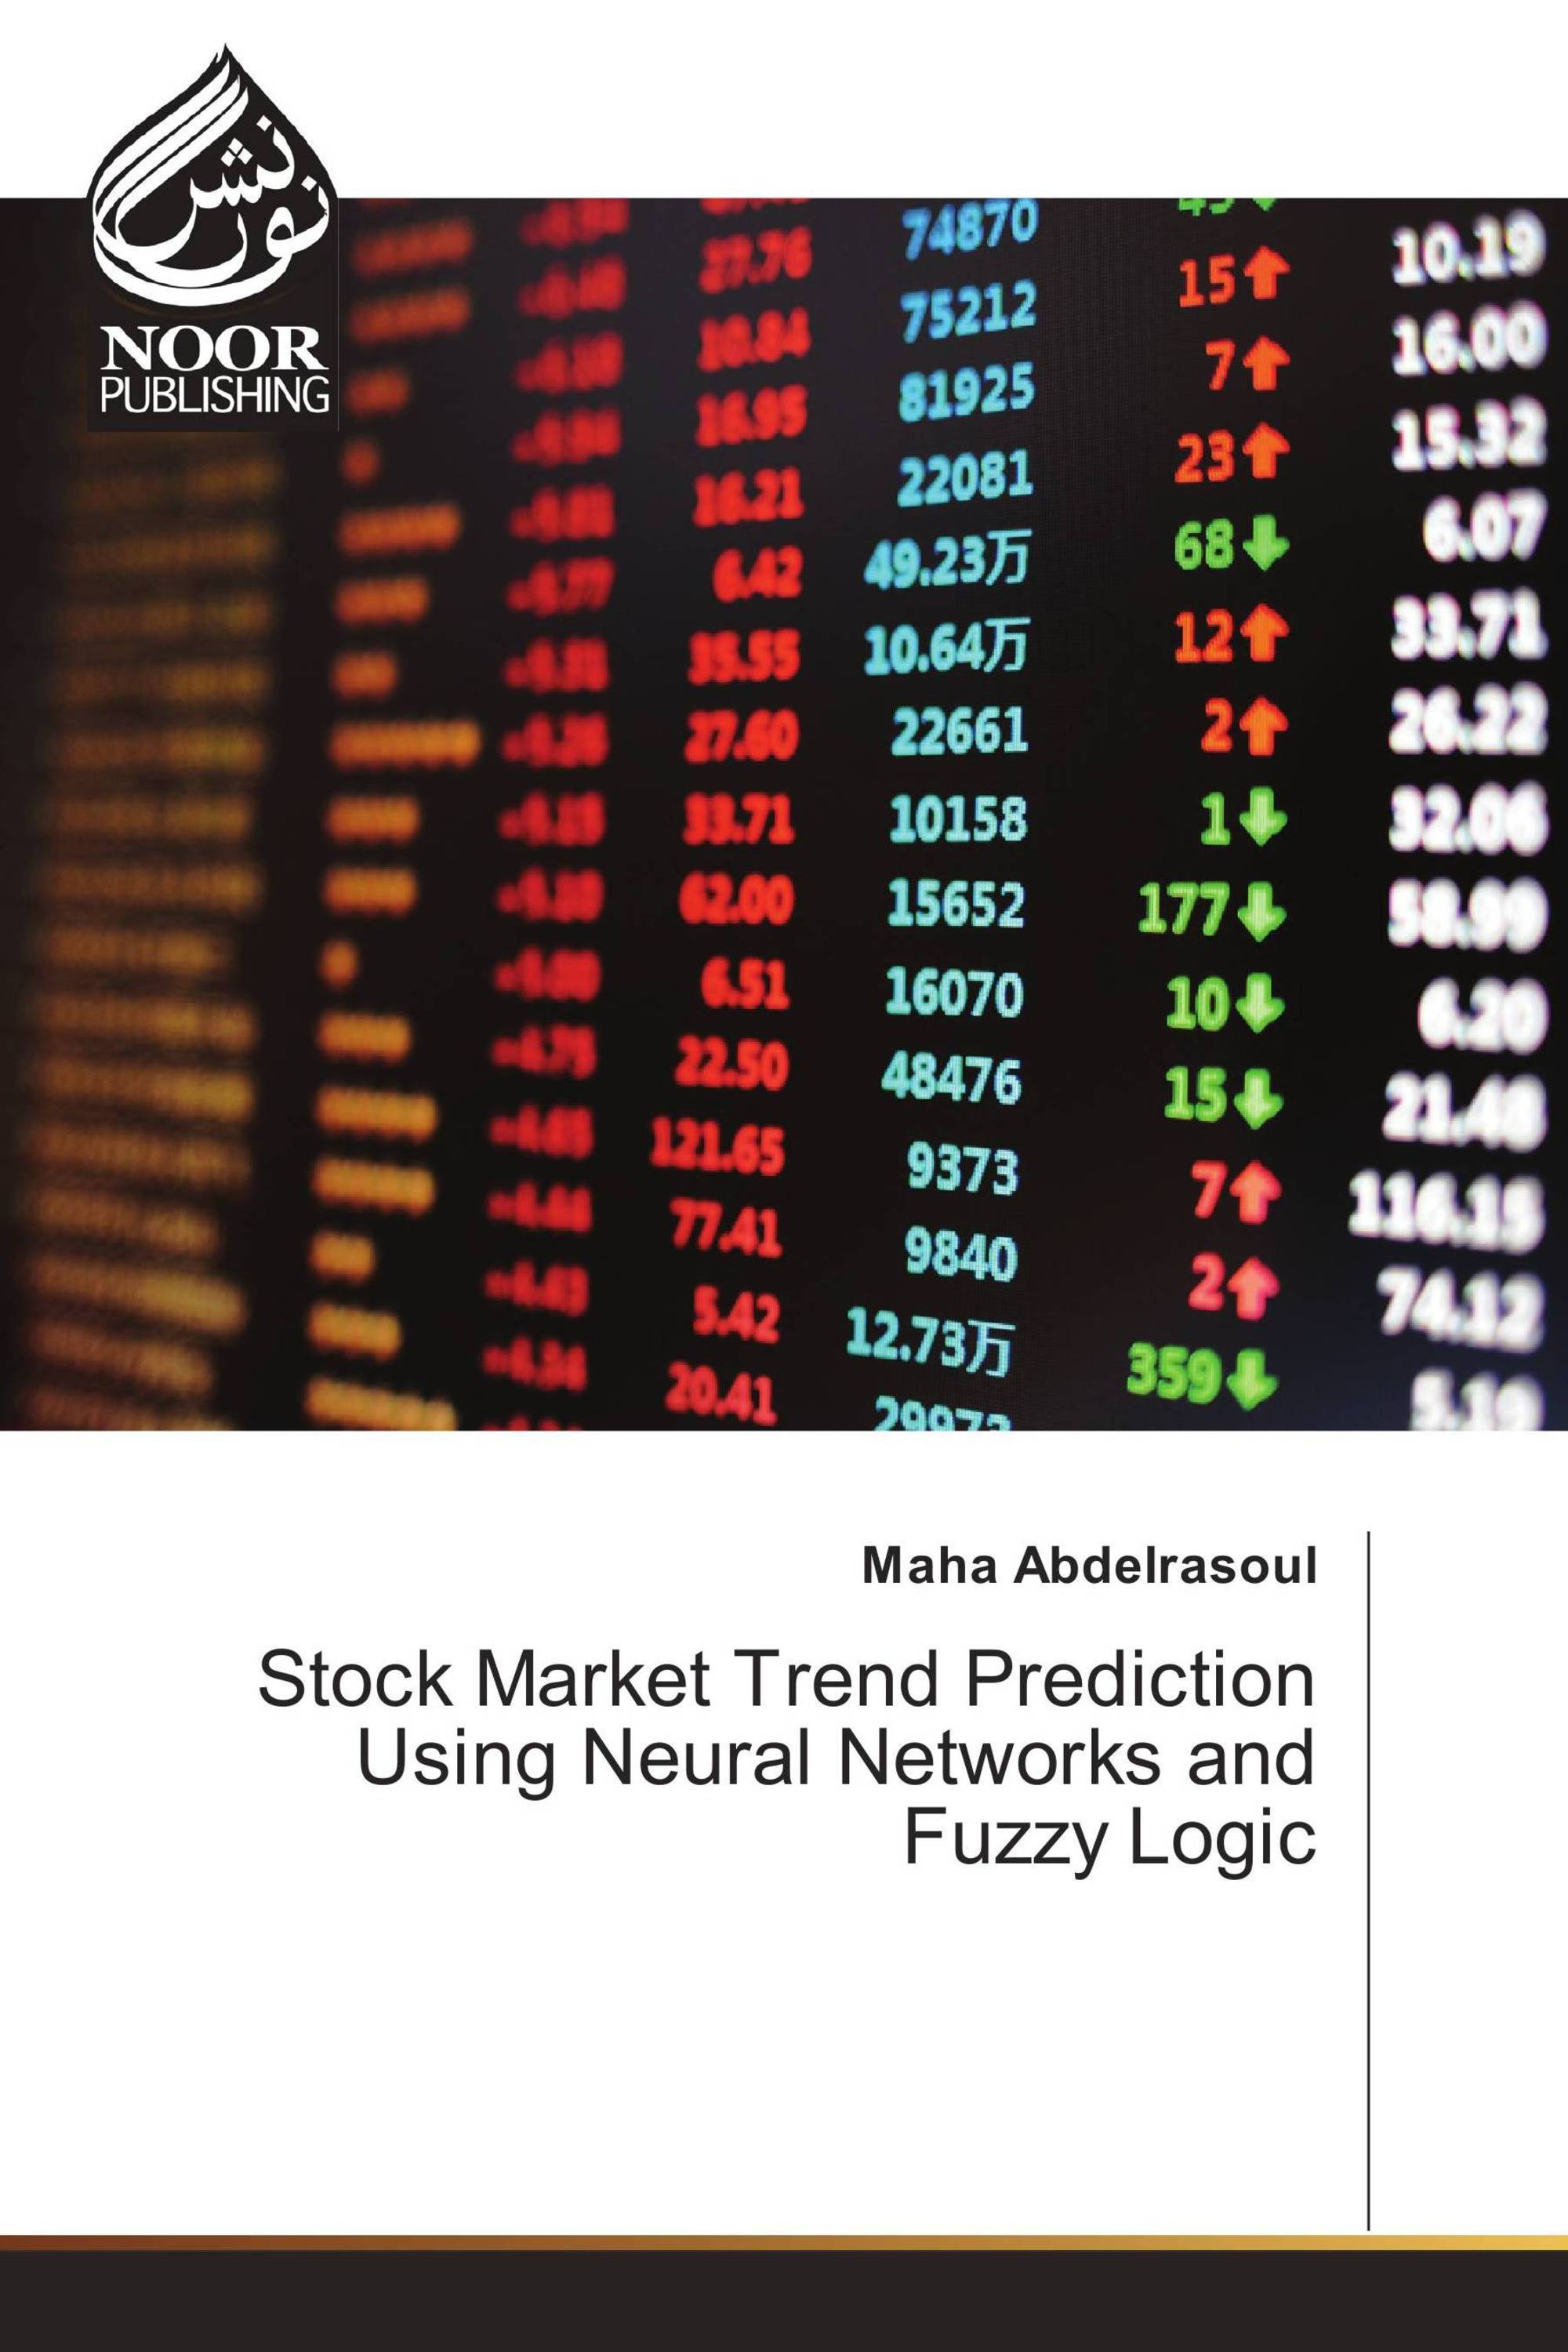 Stock Market Trend Prediction Using Neural Networks and Fuzzy Logic